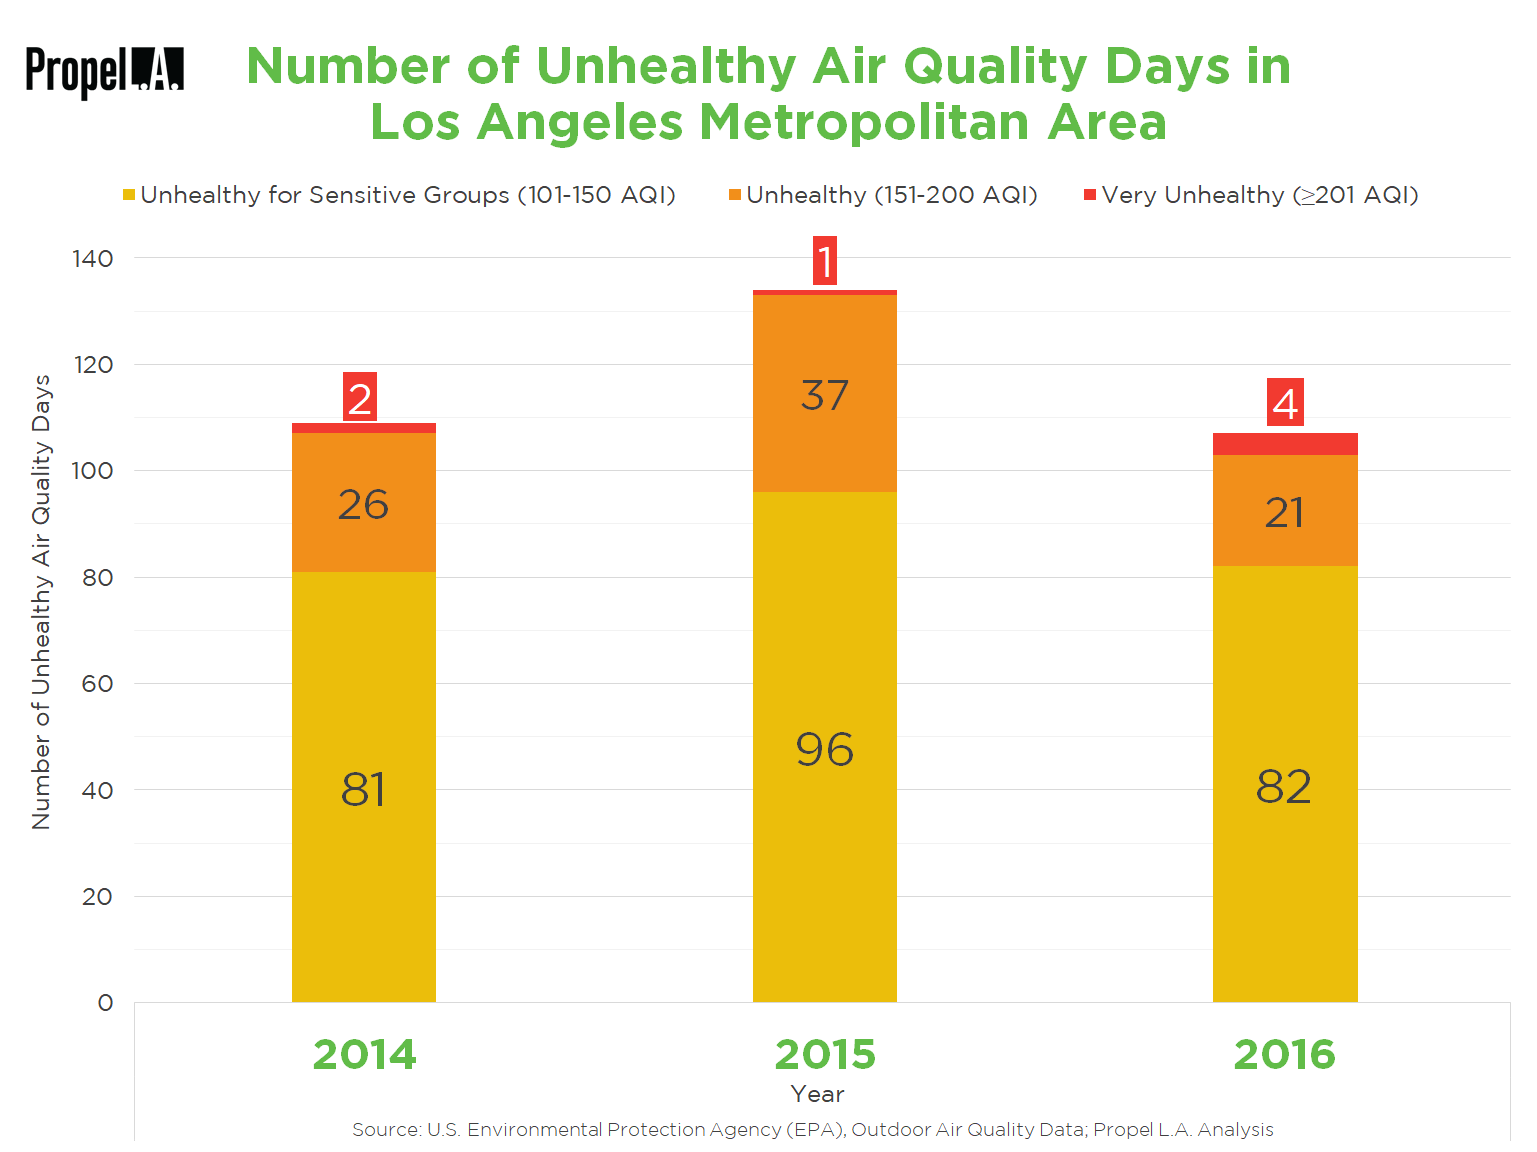 Number of Unhealthy Air Quality Days in L.A. Metropolitan Area